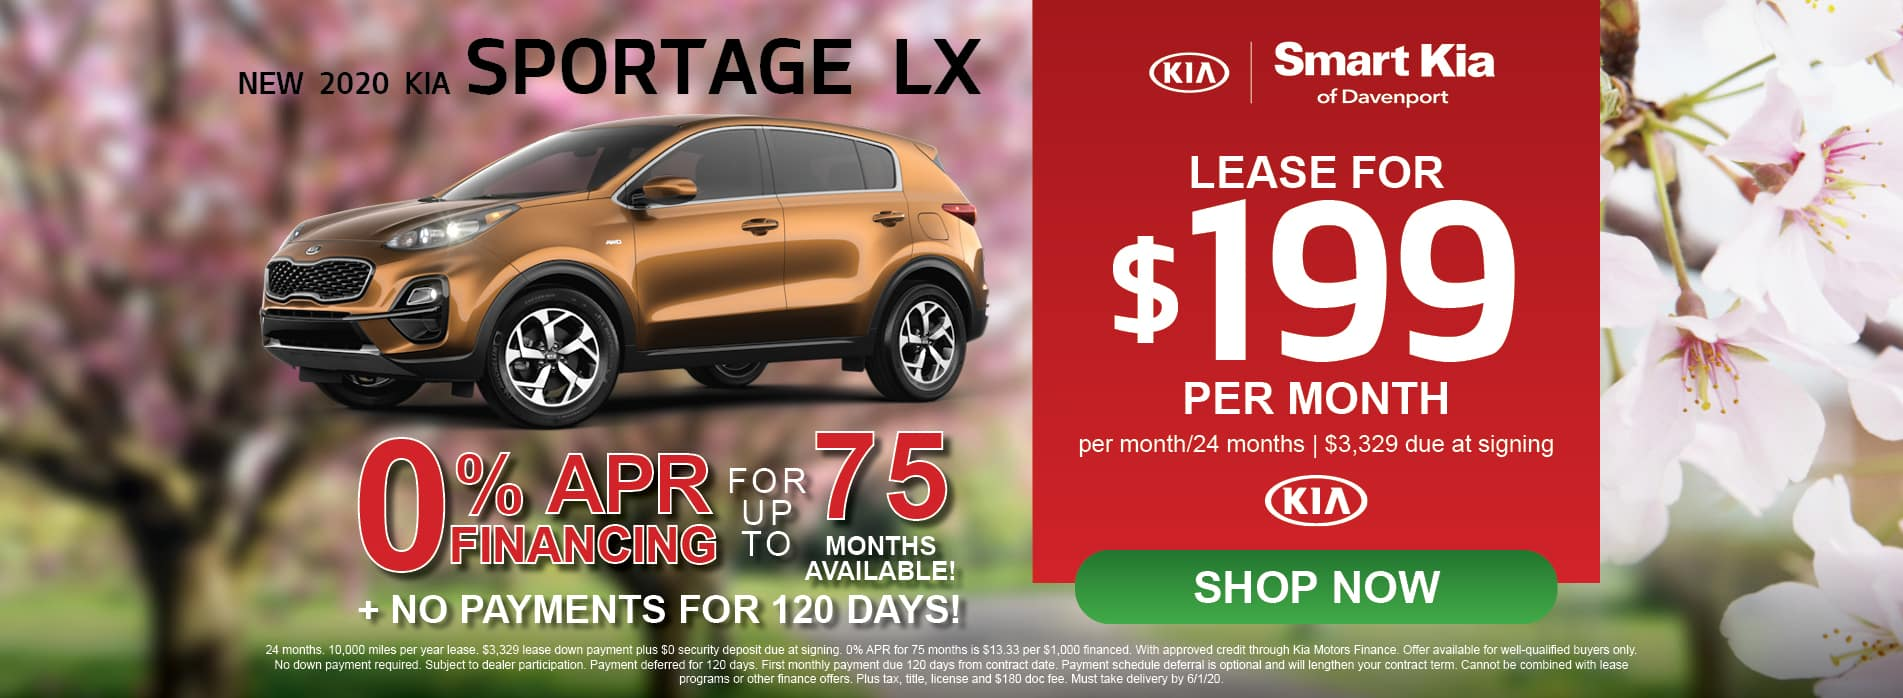 Lease a New Sportage